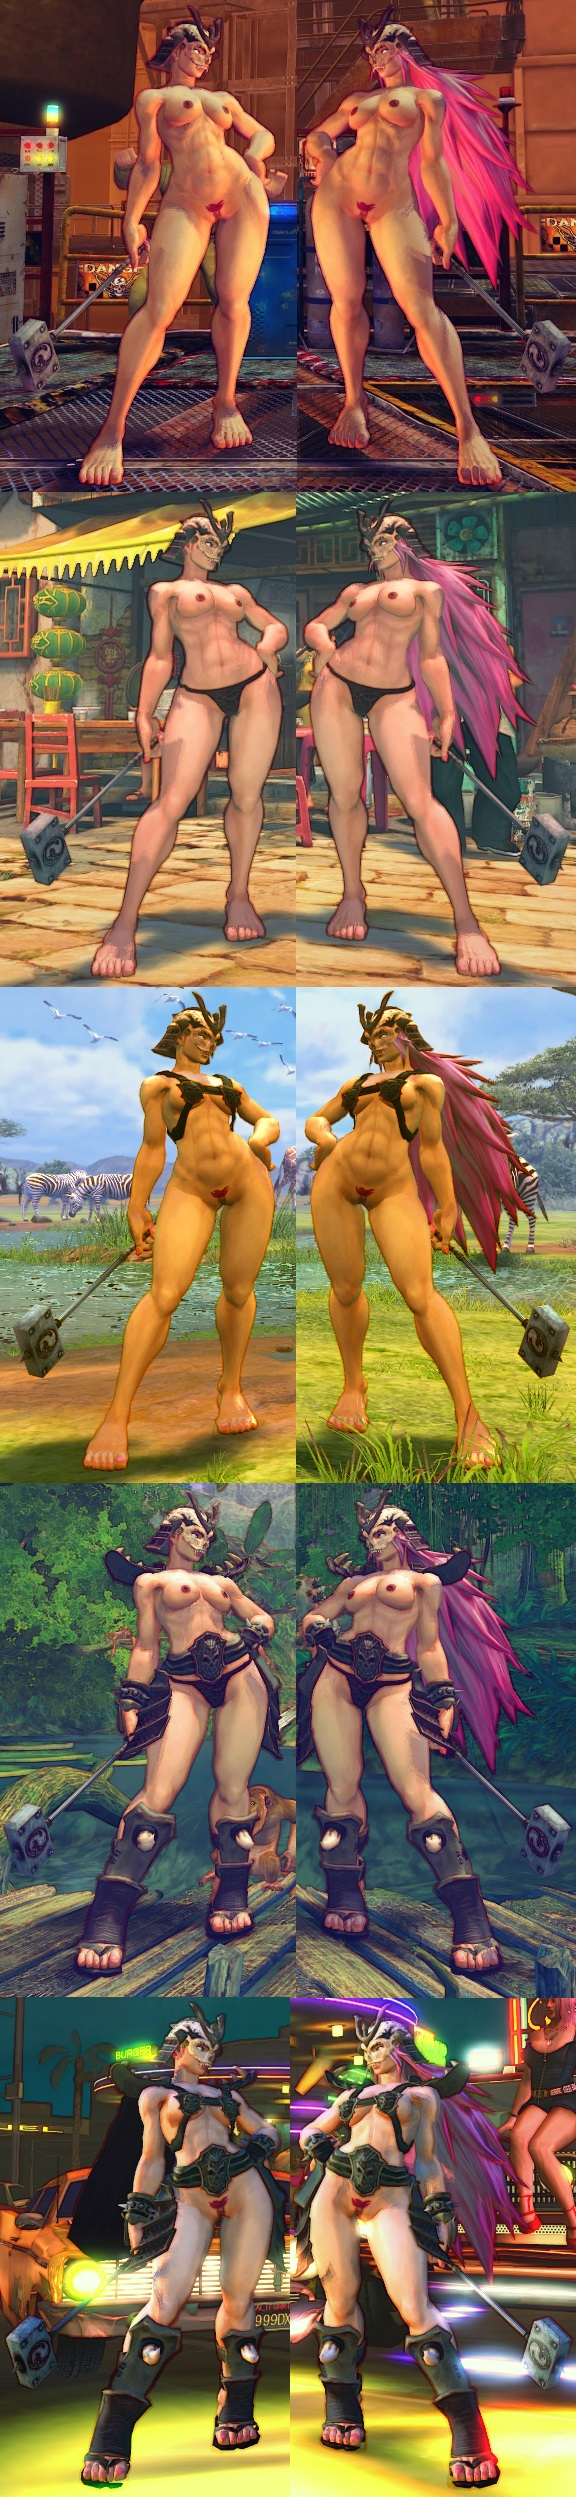 Street fighter 4 nude download porn movies